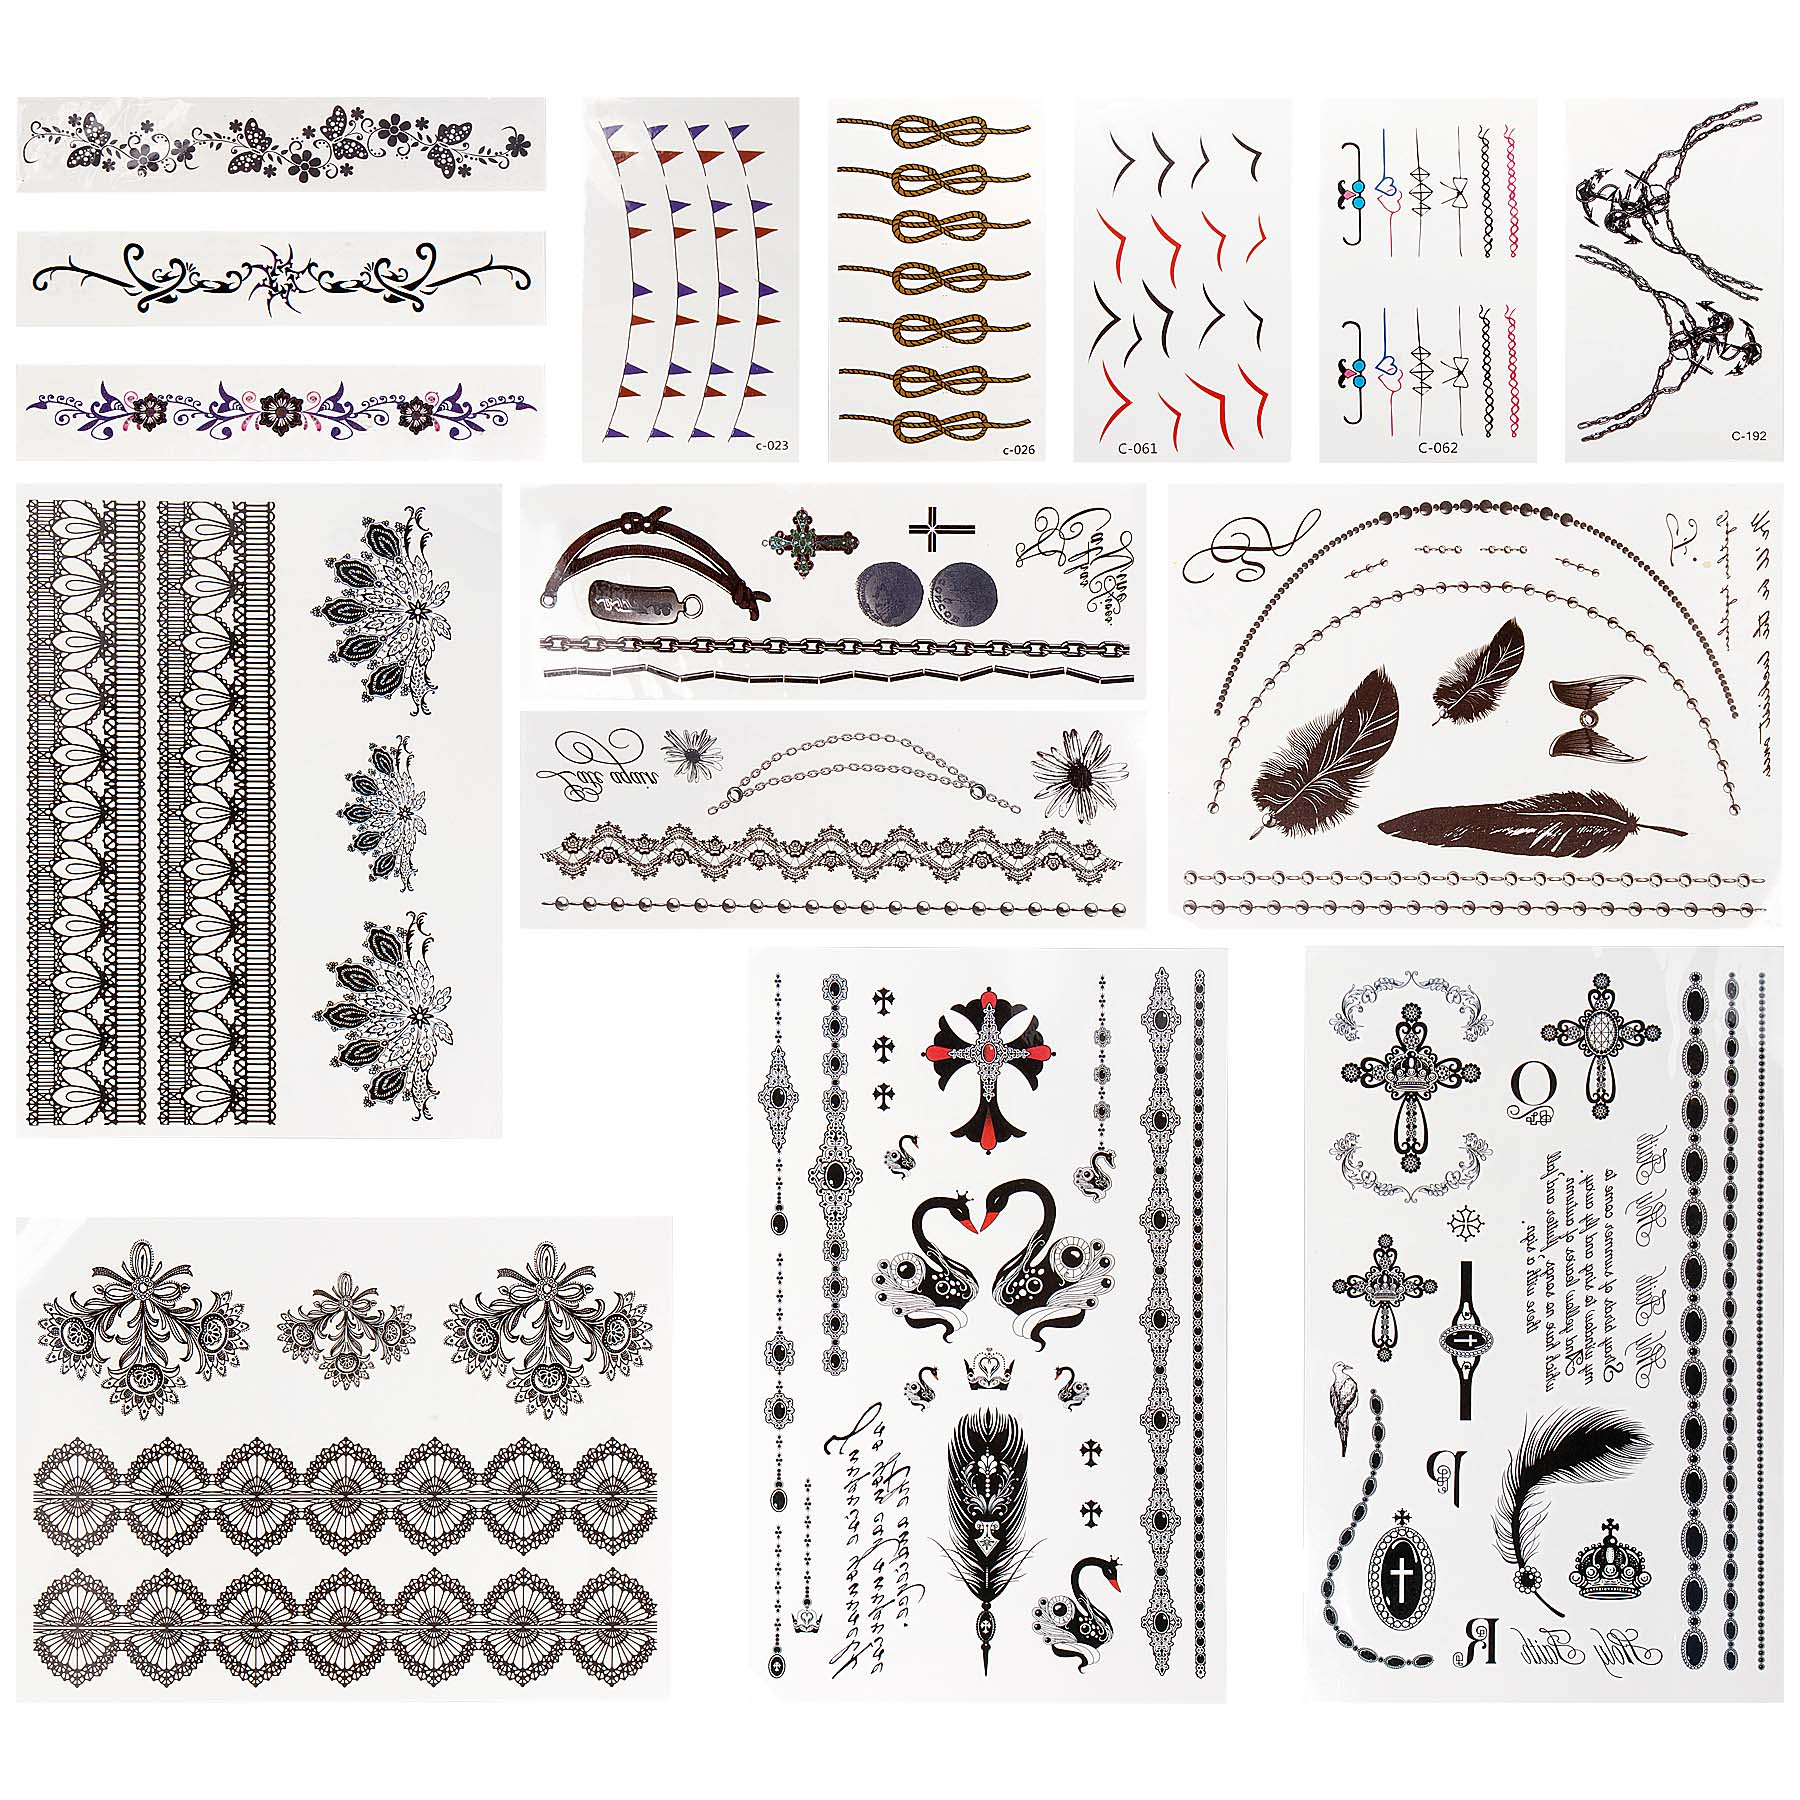 BMC Huge Assortment of Non-Toxic Water Transfer Faux Body Art Temporary Tattoos